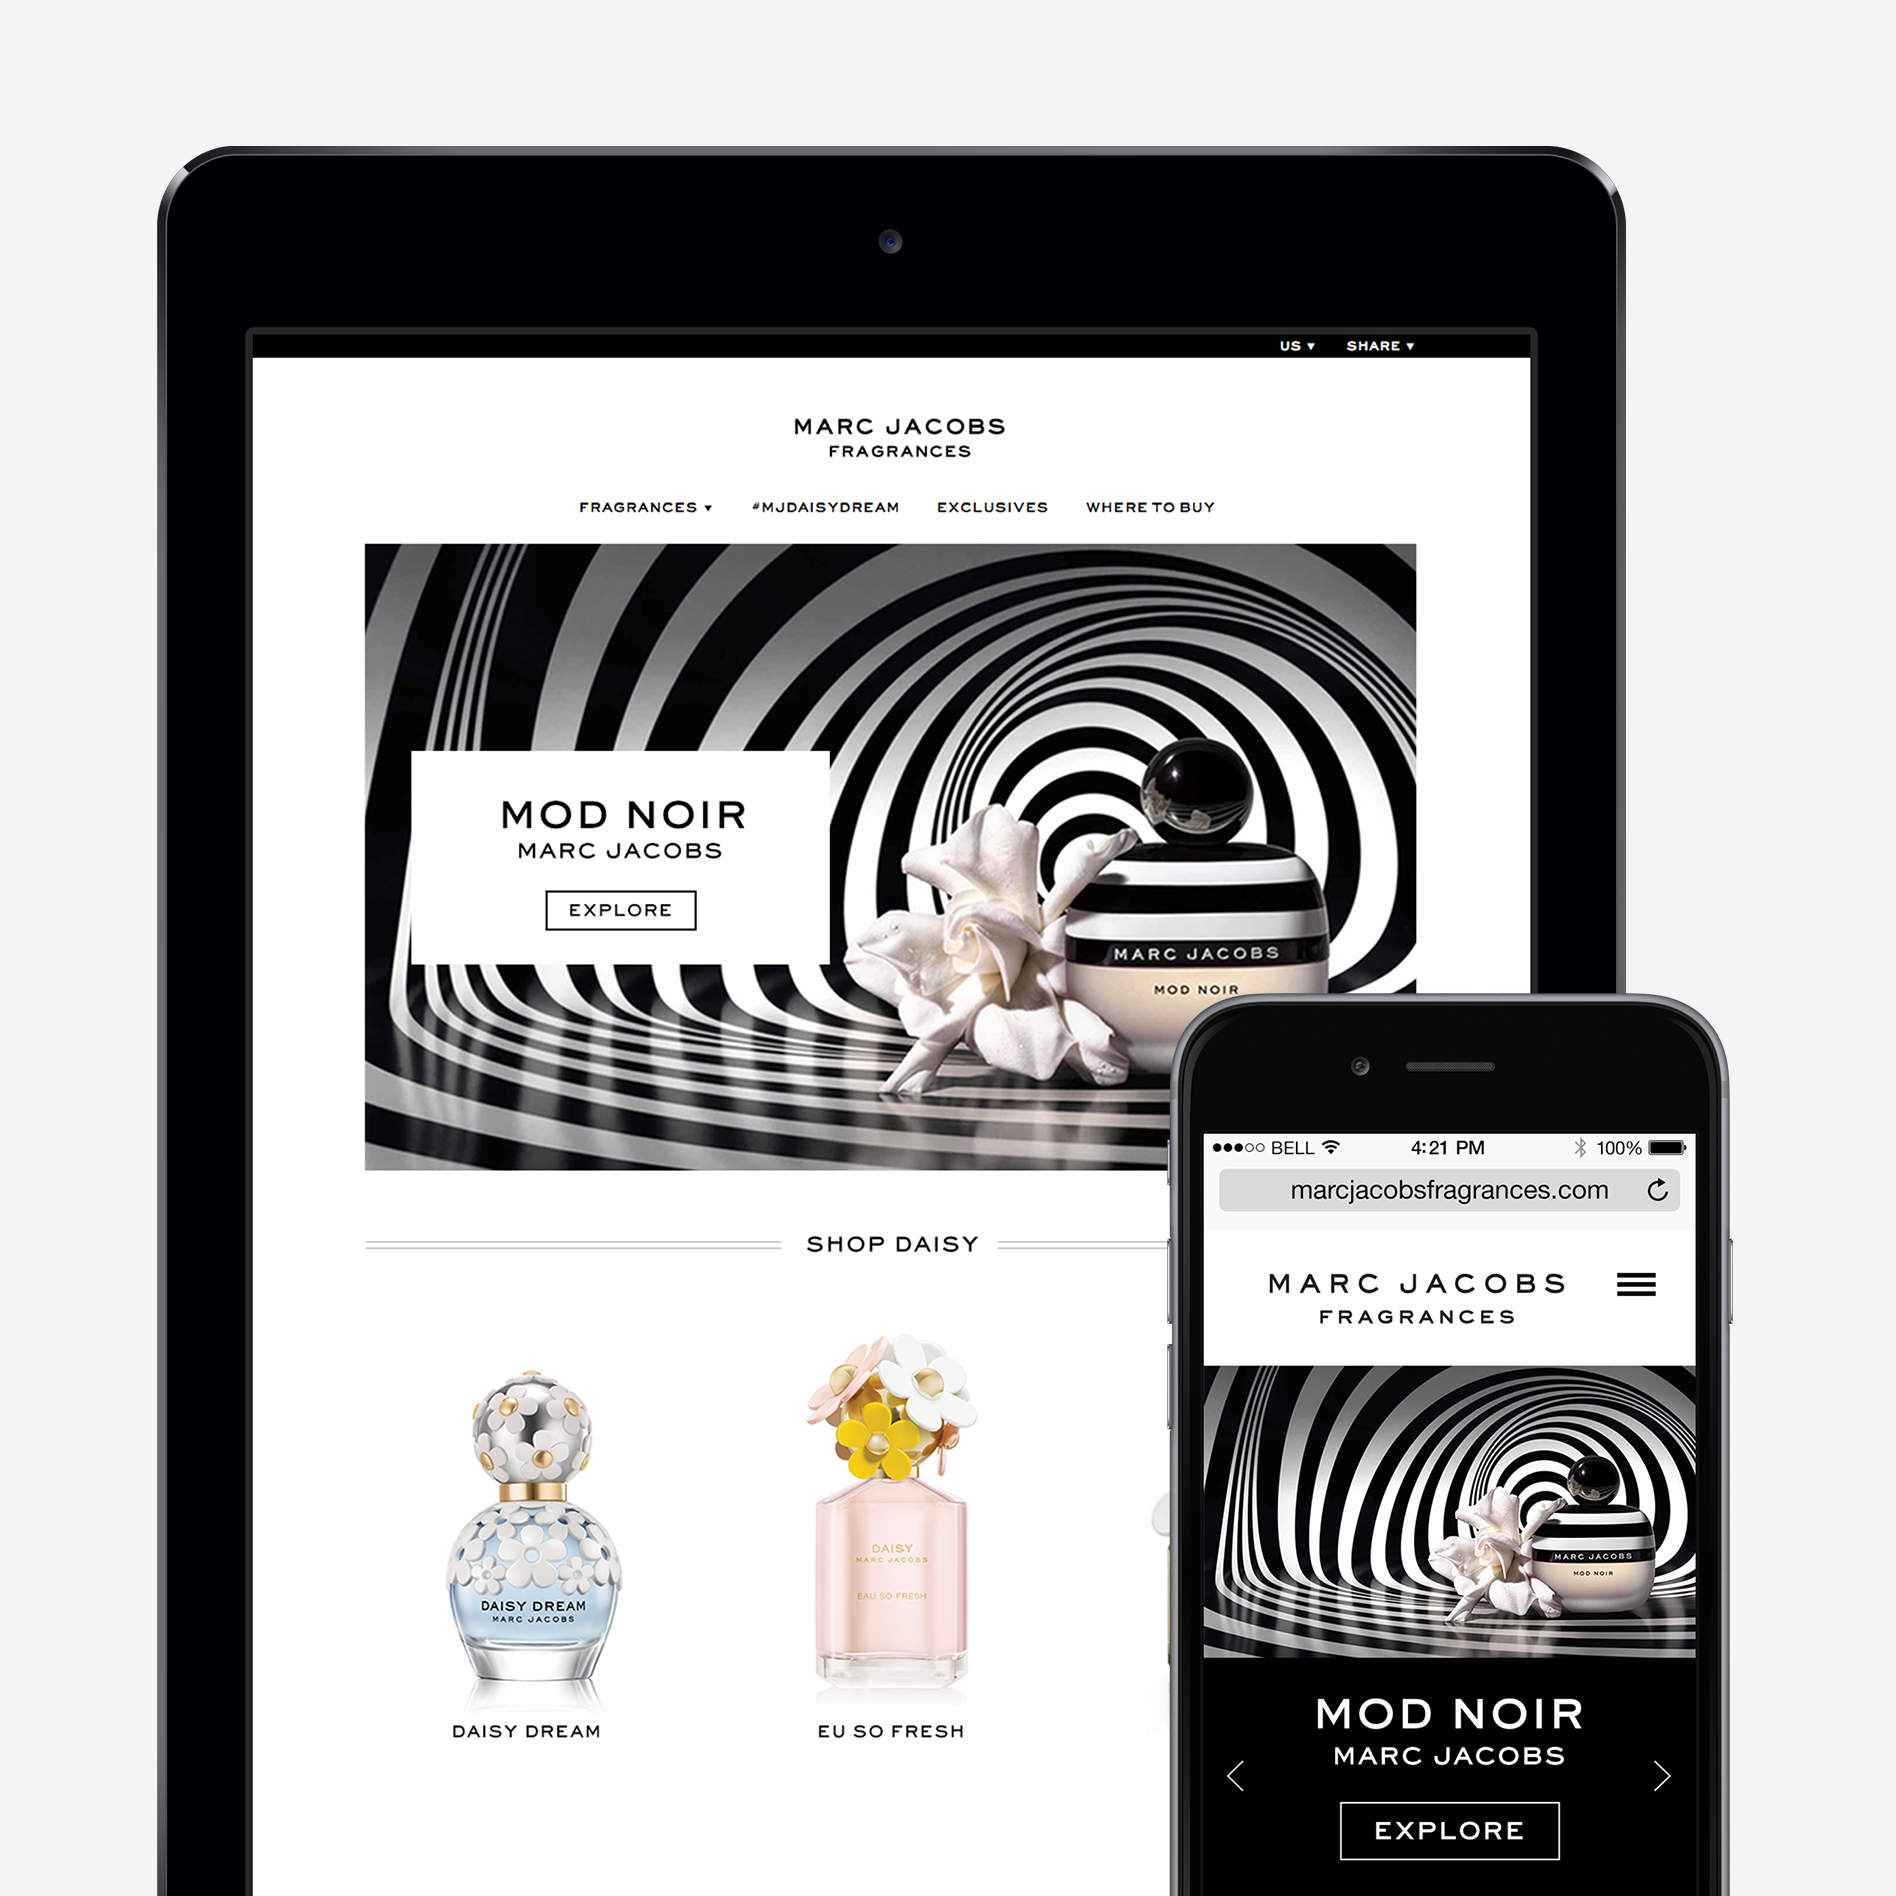 Marc Jacobs Fragrances Homepage Redesign